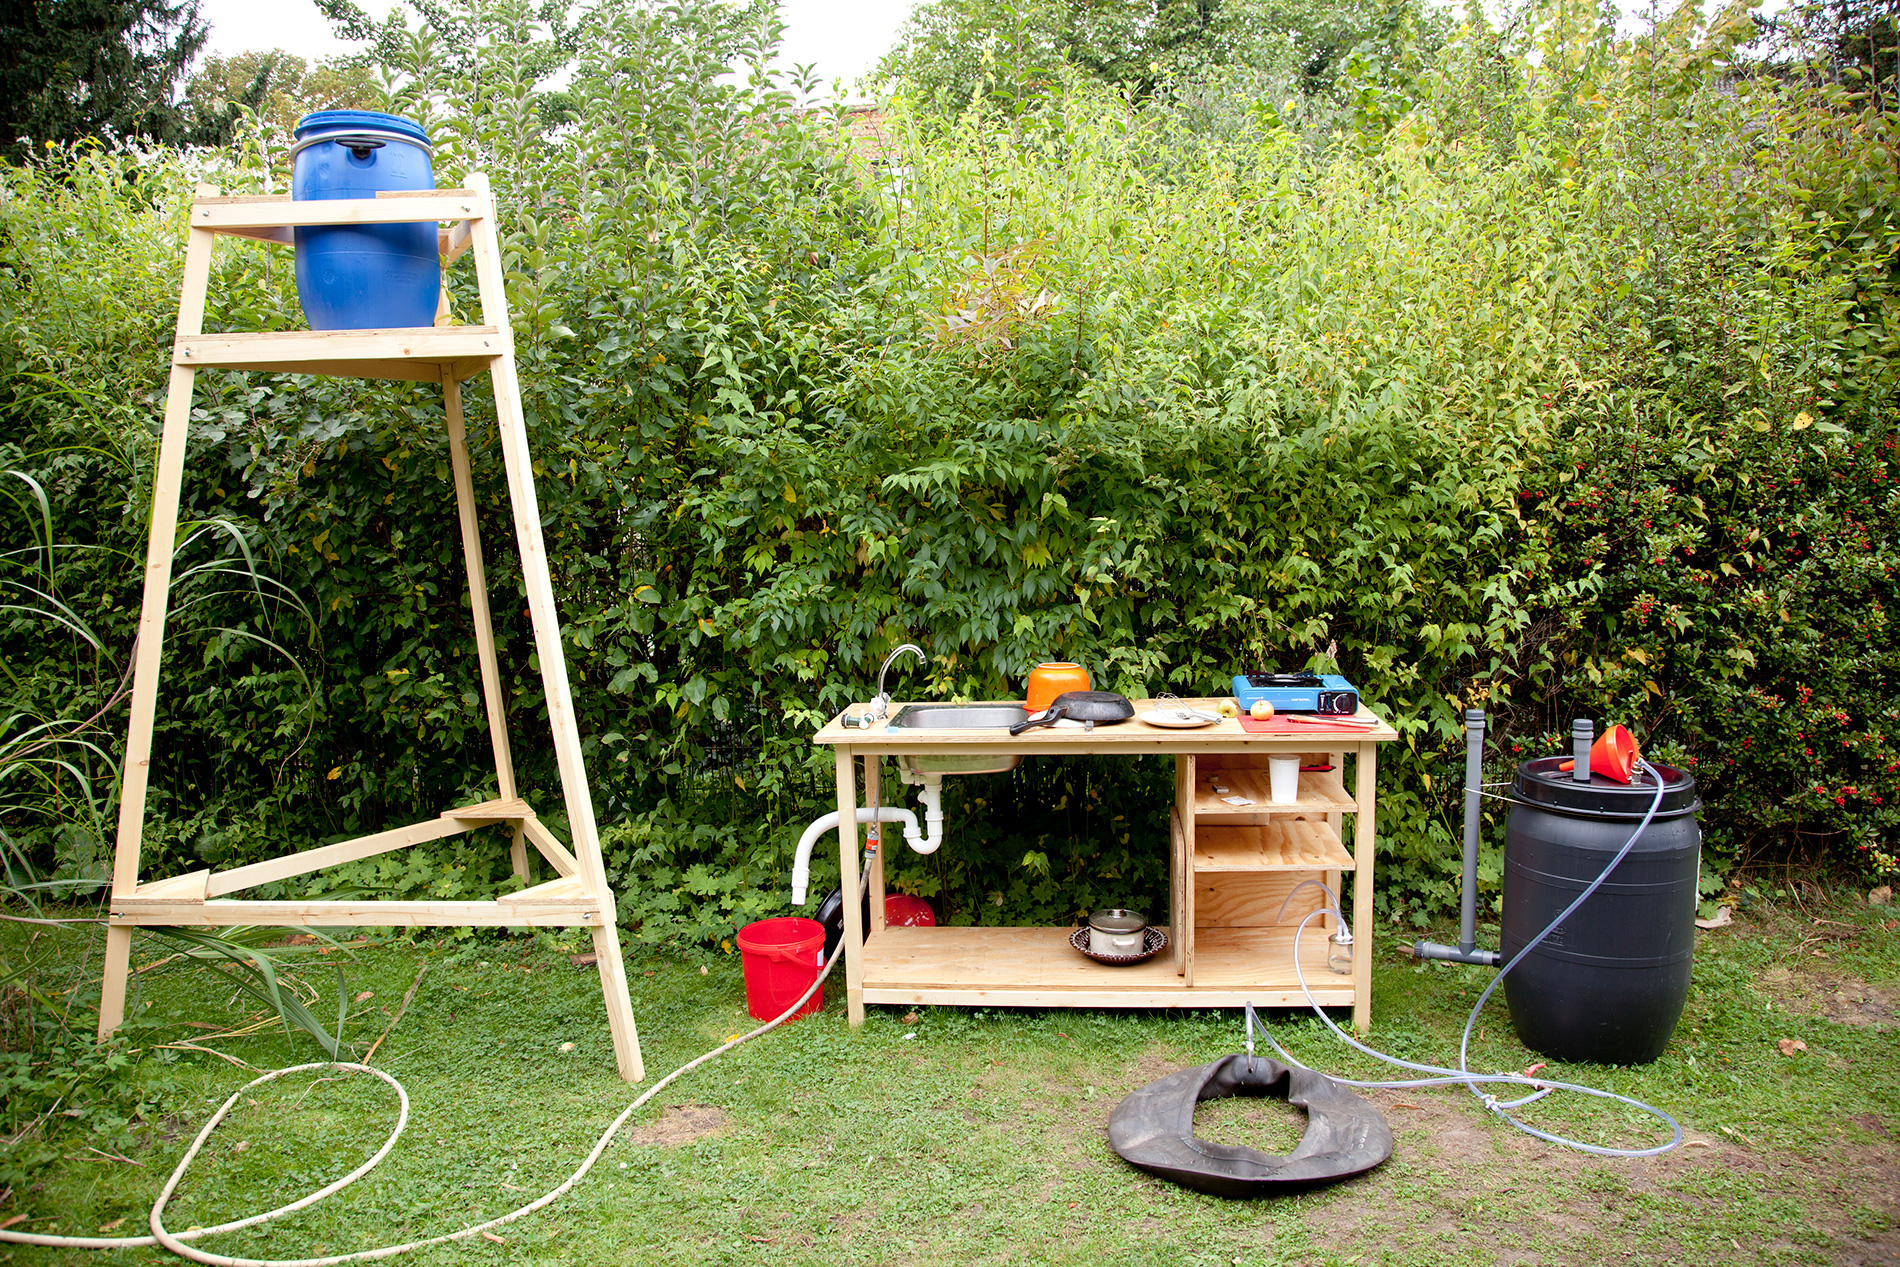 Kitchen unit-rainwater collector and biogas digester